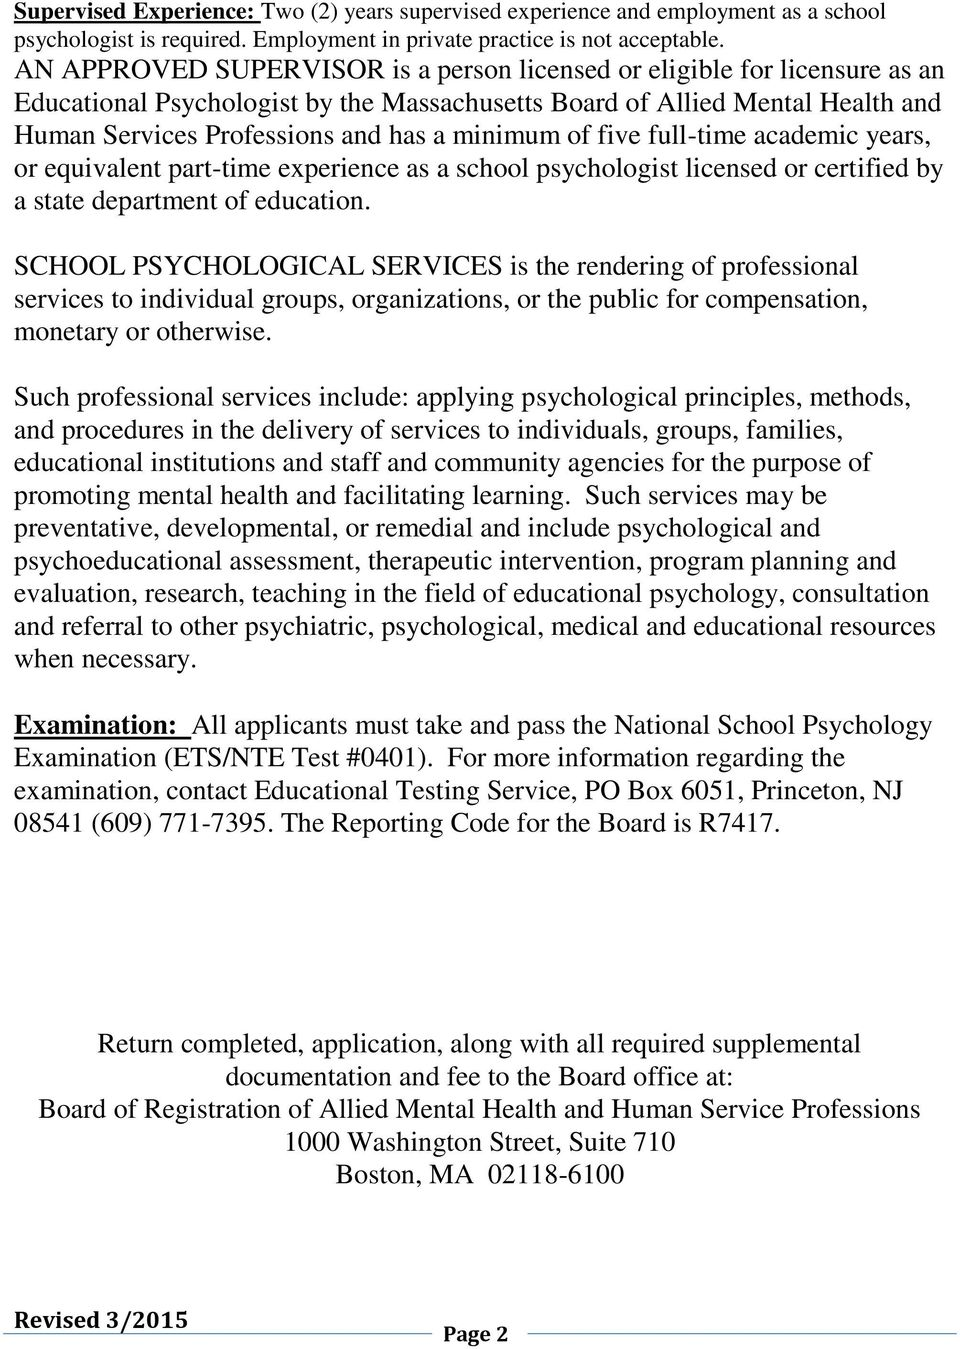 minimum of five full-time academic years, or equivalent part-time experience as a school psychologist licensed or certified by a state department of education.